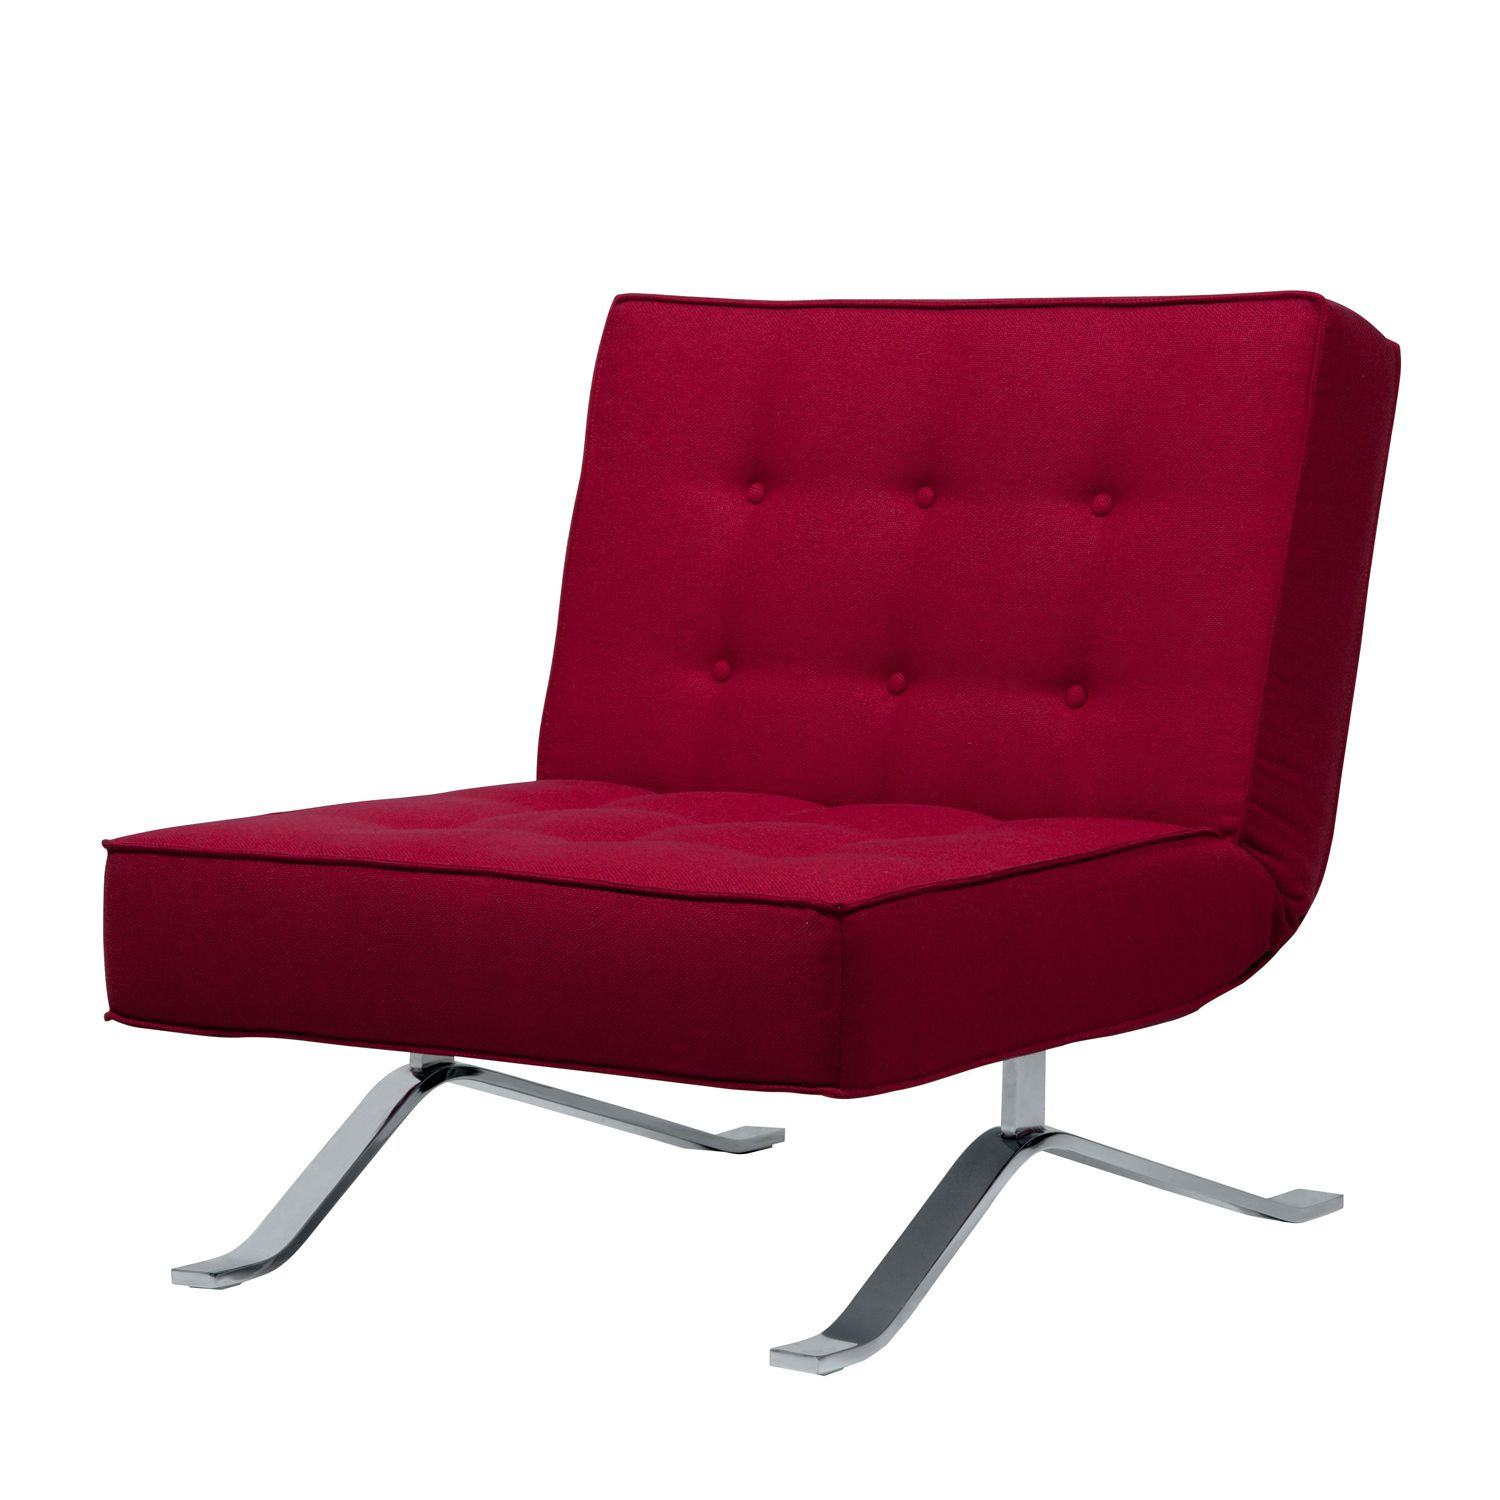 Schlafsessel Wave One Webstoff - Stoff Bora Rot